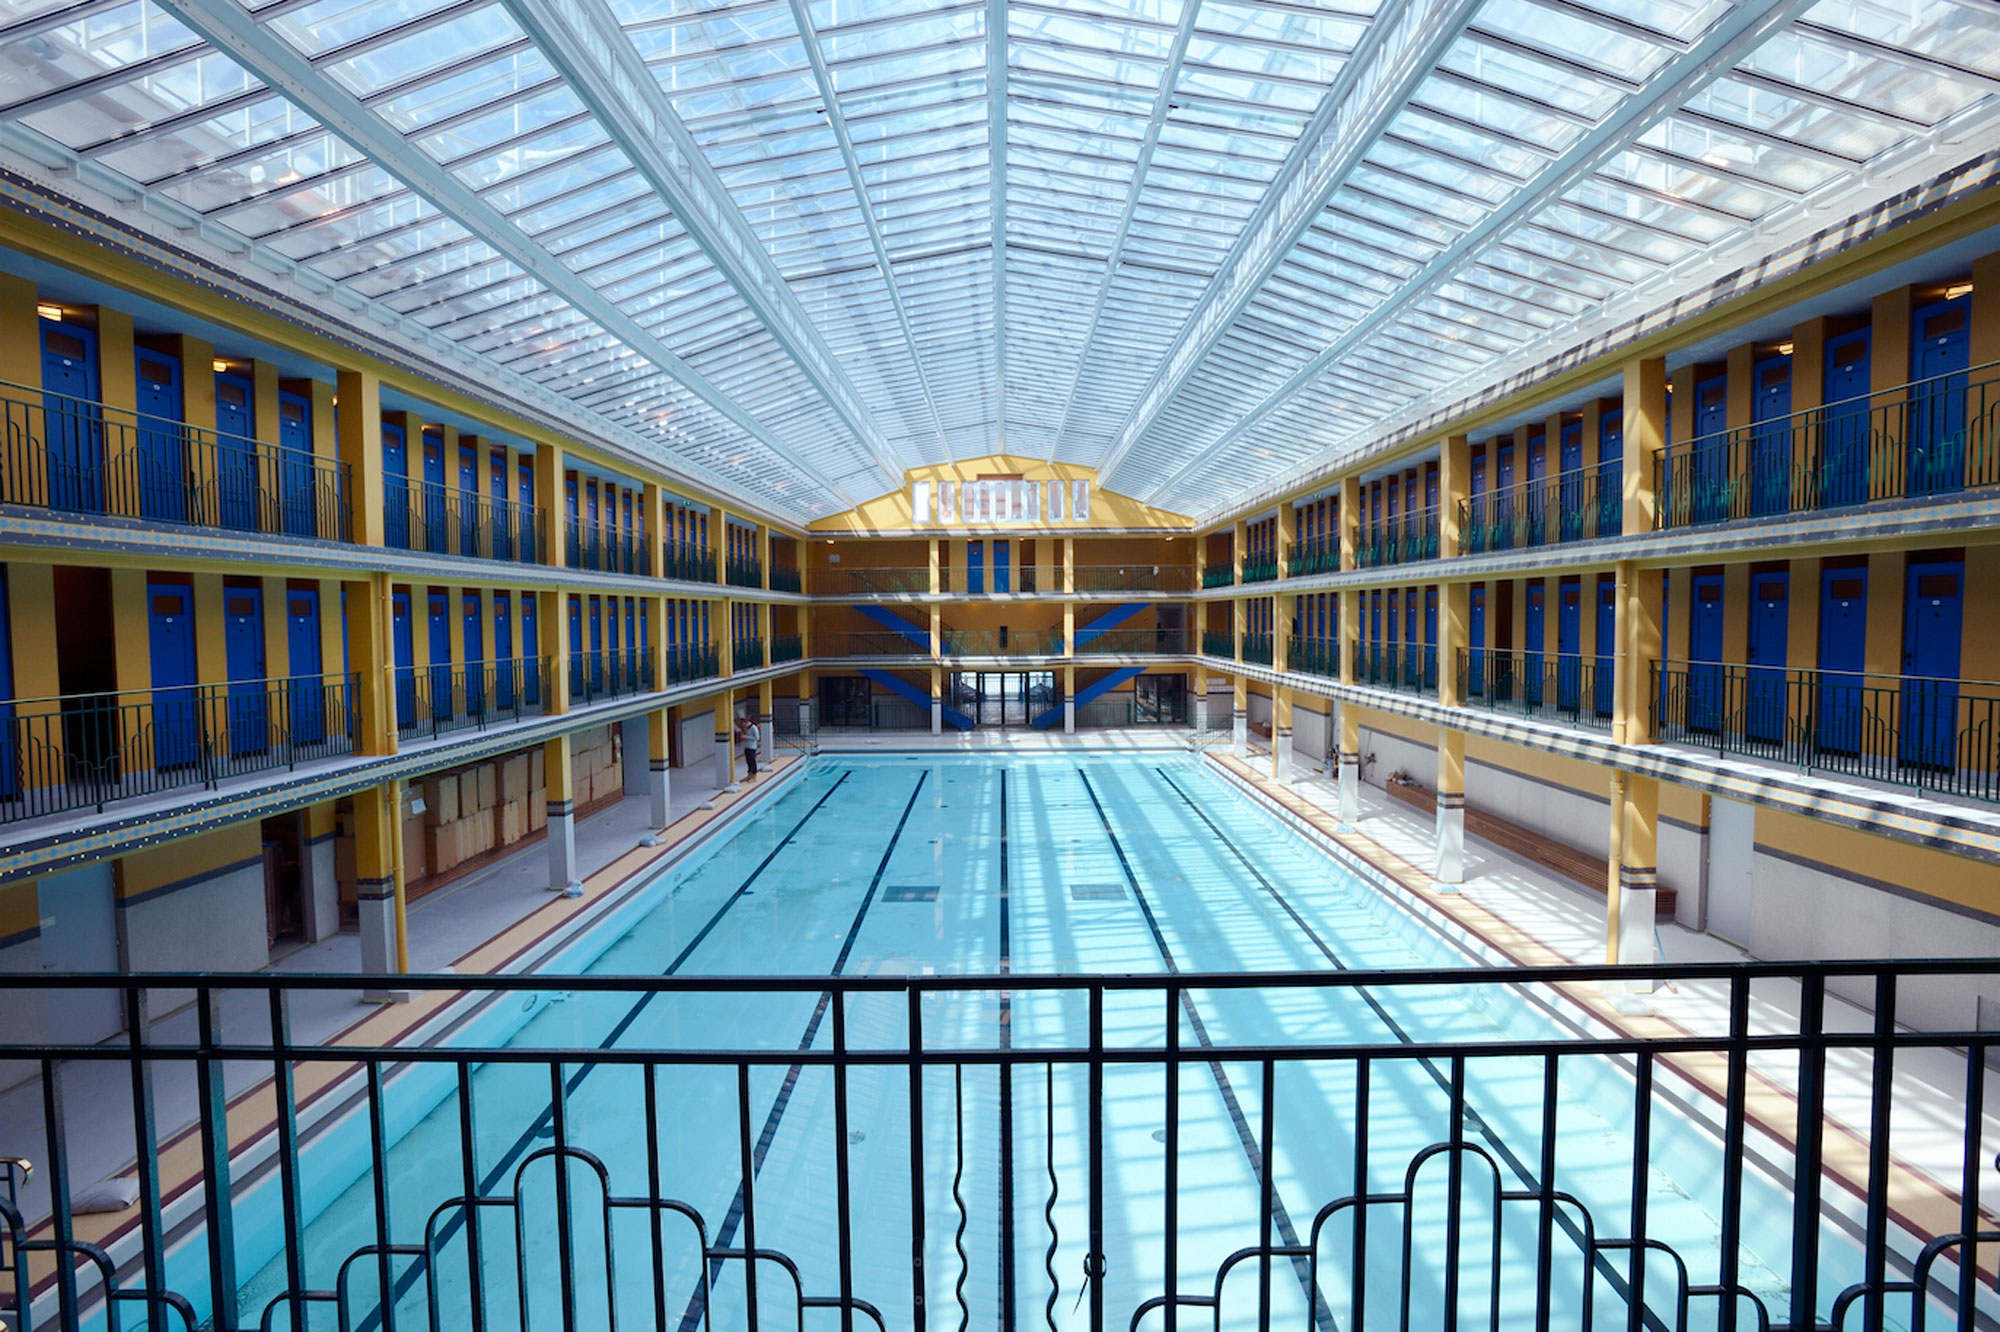 Piscine molitor hotel piscine molitor ep time out paris for Piscine molitor